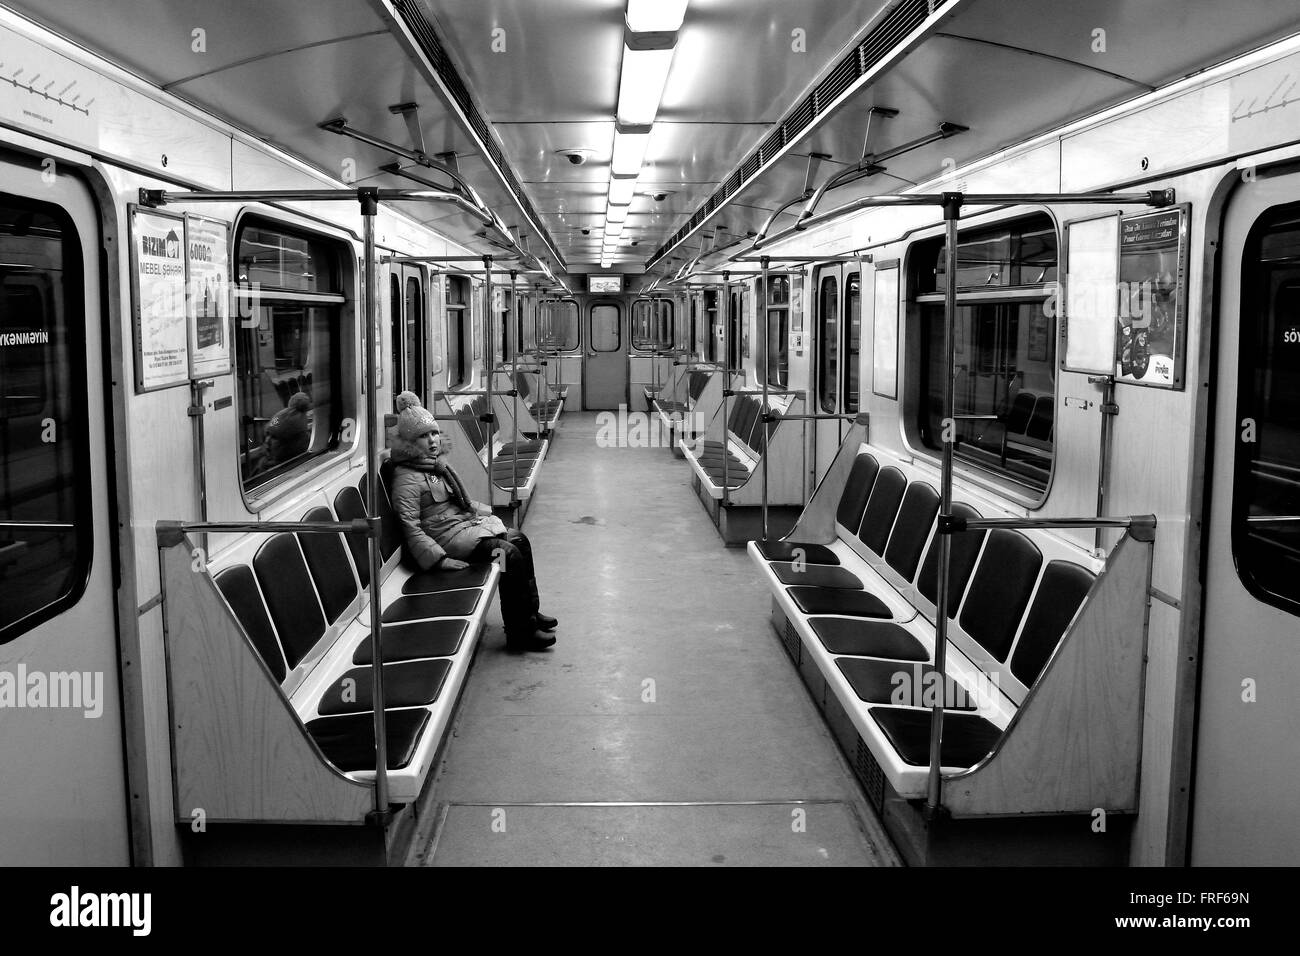 Girl in an empty carriage on the Baku Metro. A child sits alone on a subway train in the capital of Azerbaijan - Stock Image